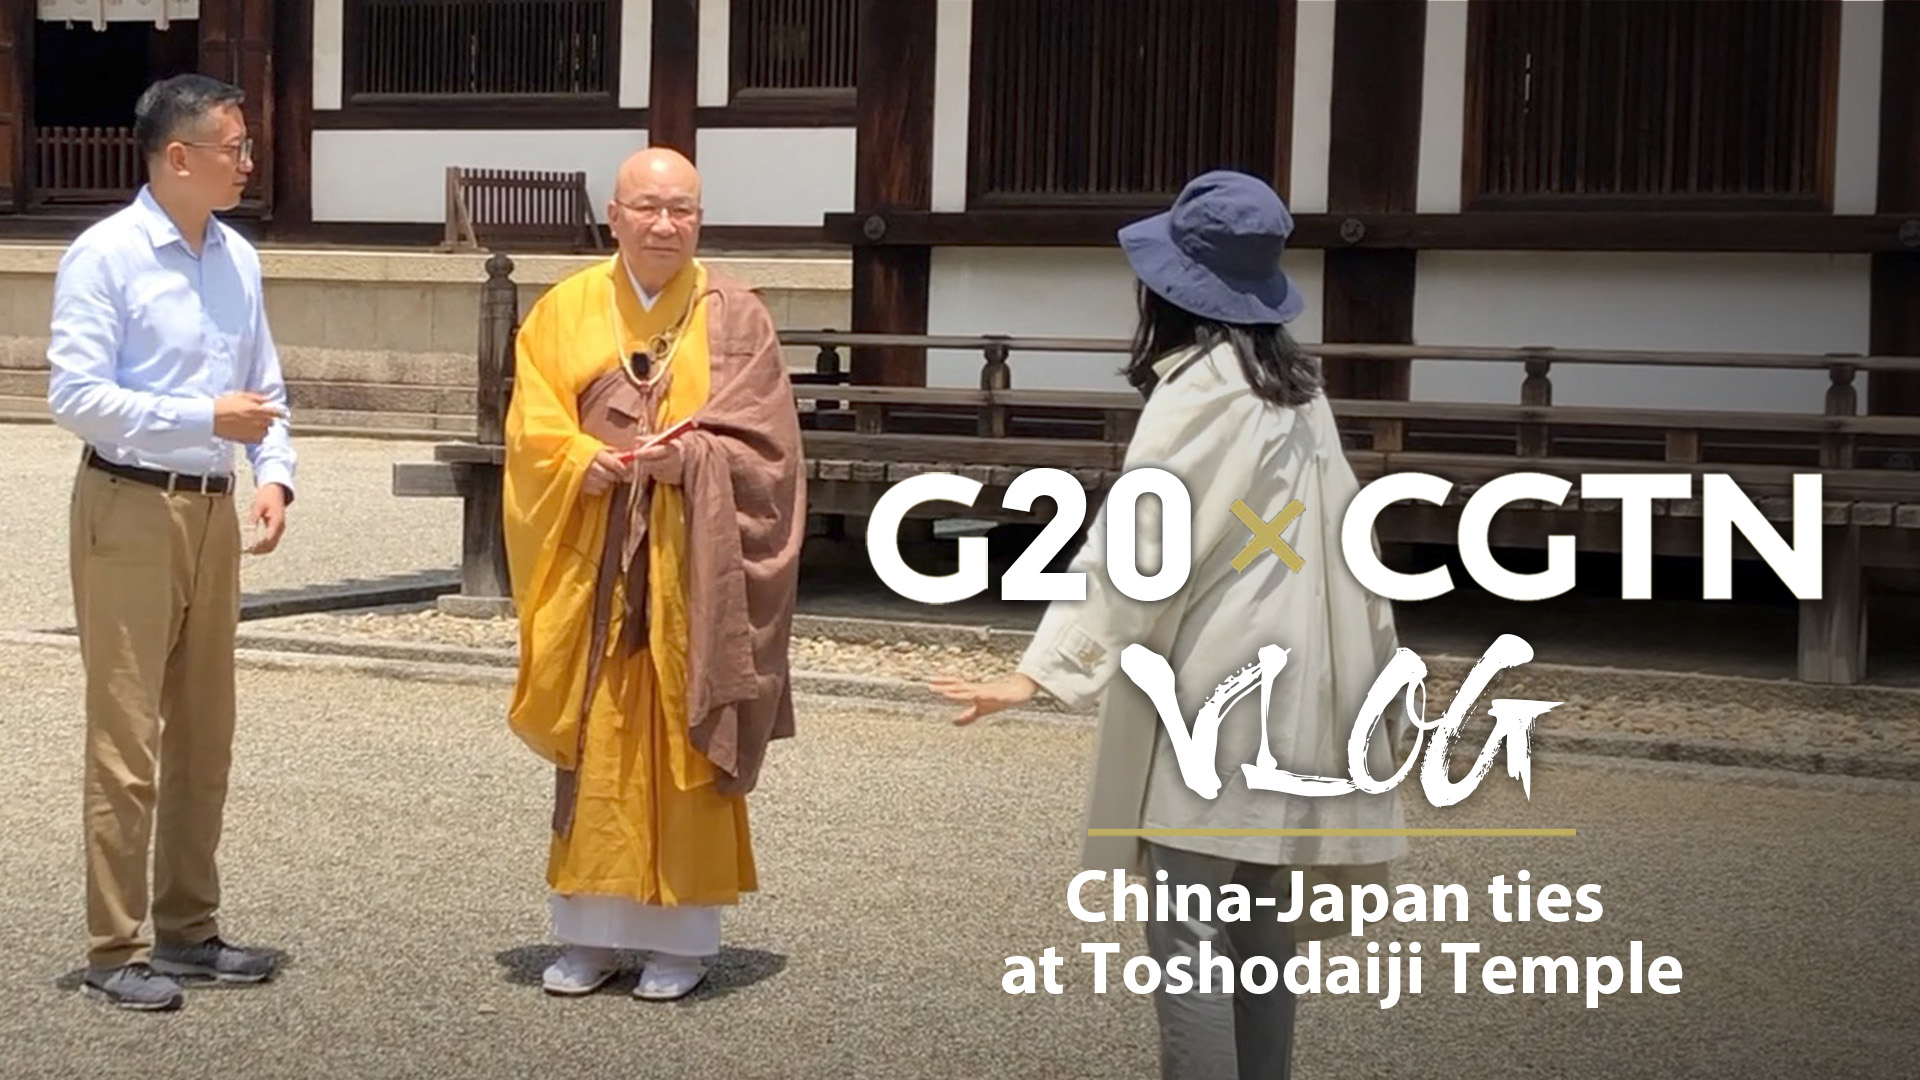 Toshodaiji Temple, a connection between Chinese and Japanese culture